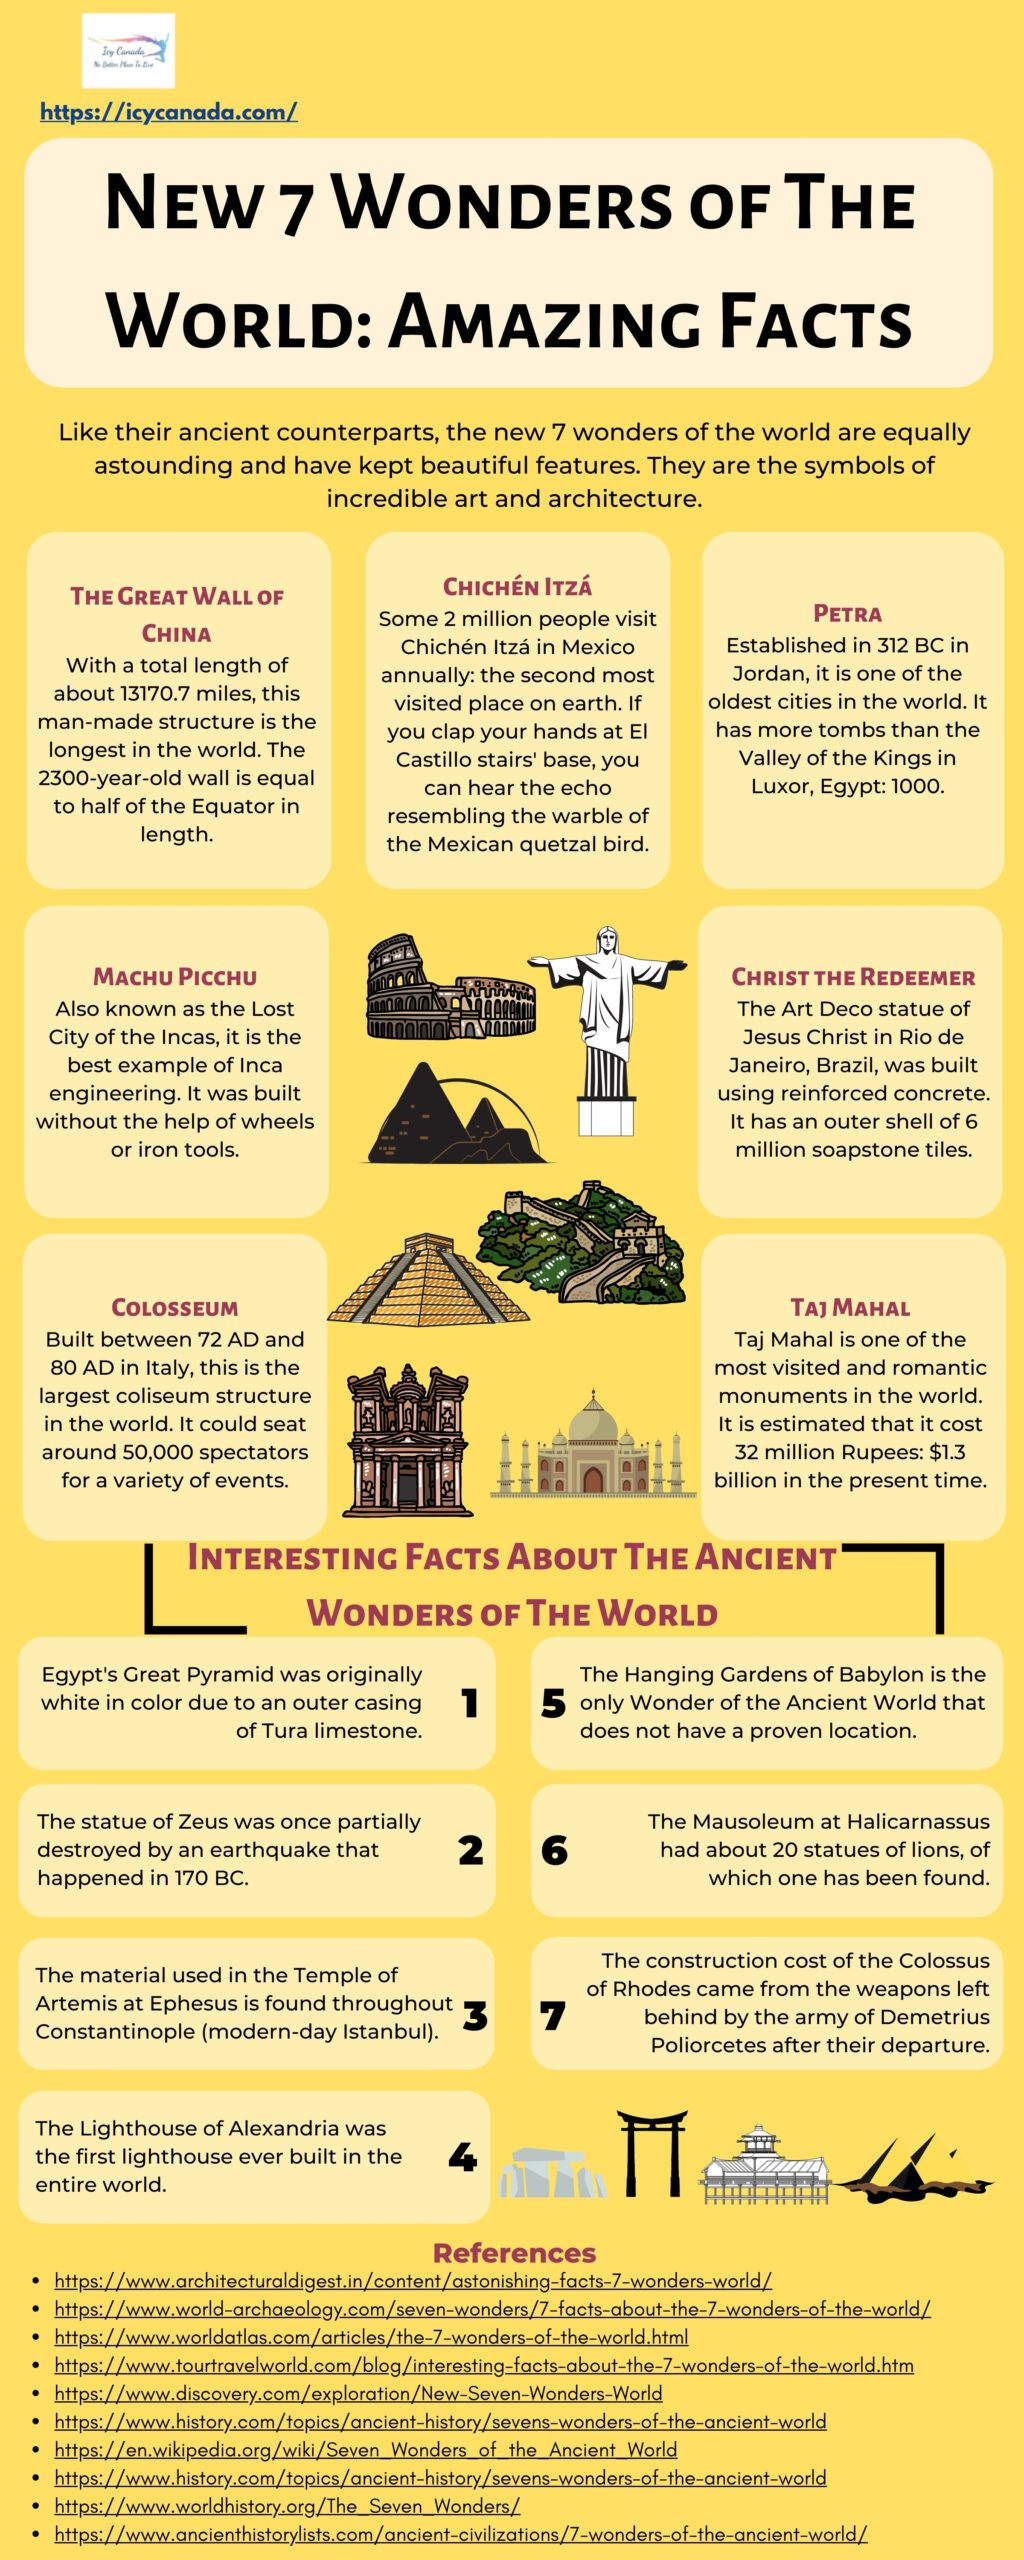 New 7 Wonders of The World Amazing Facts